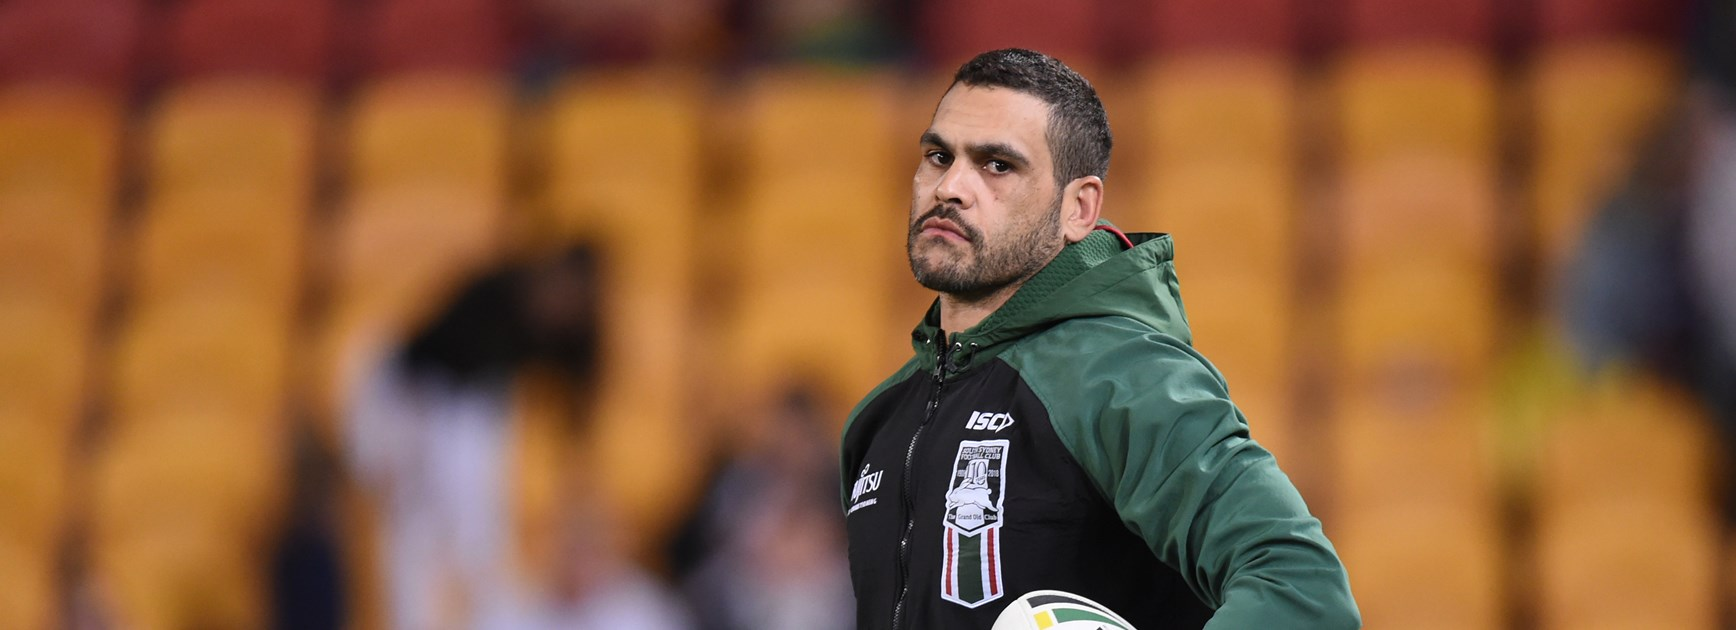 Inglis 'sincerely apologetic' after charge